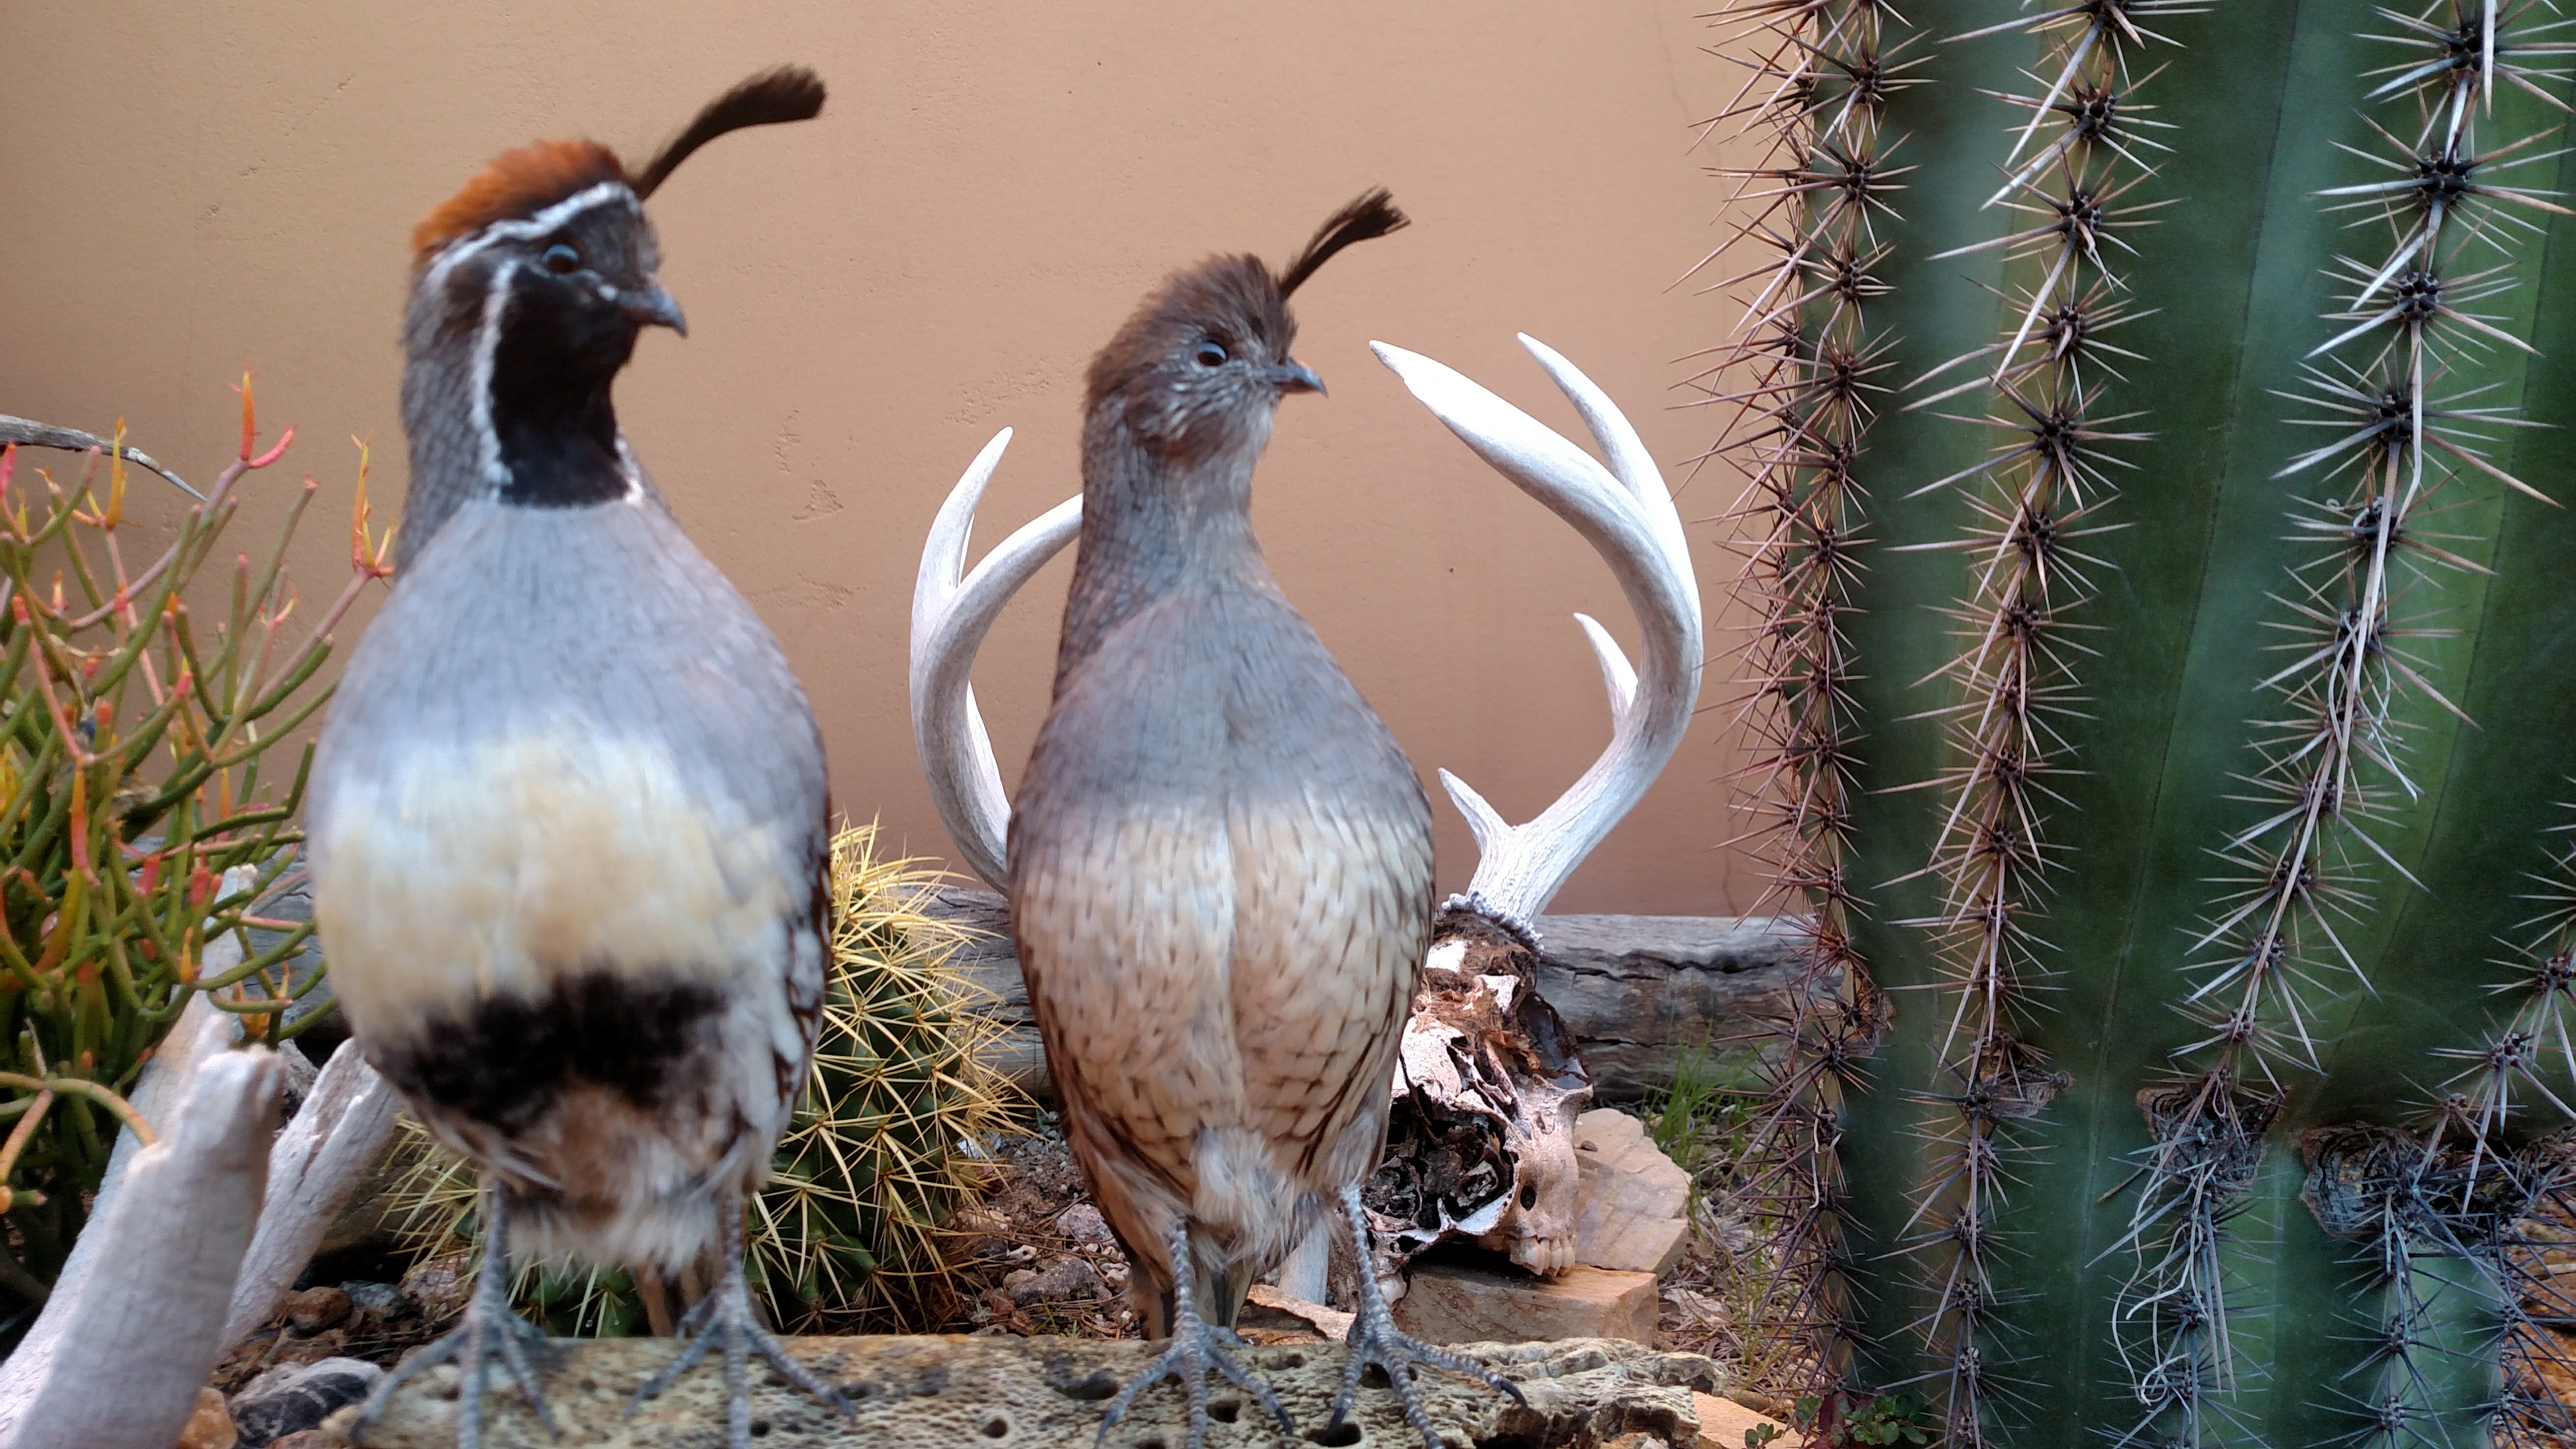 Arizona Gambels quail taxidermy